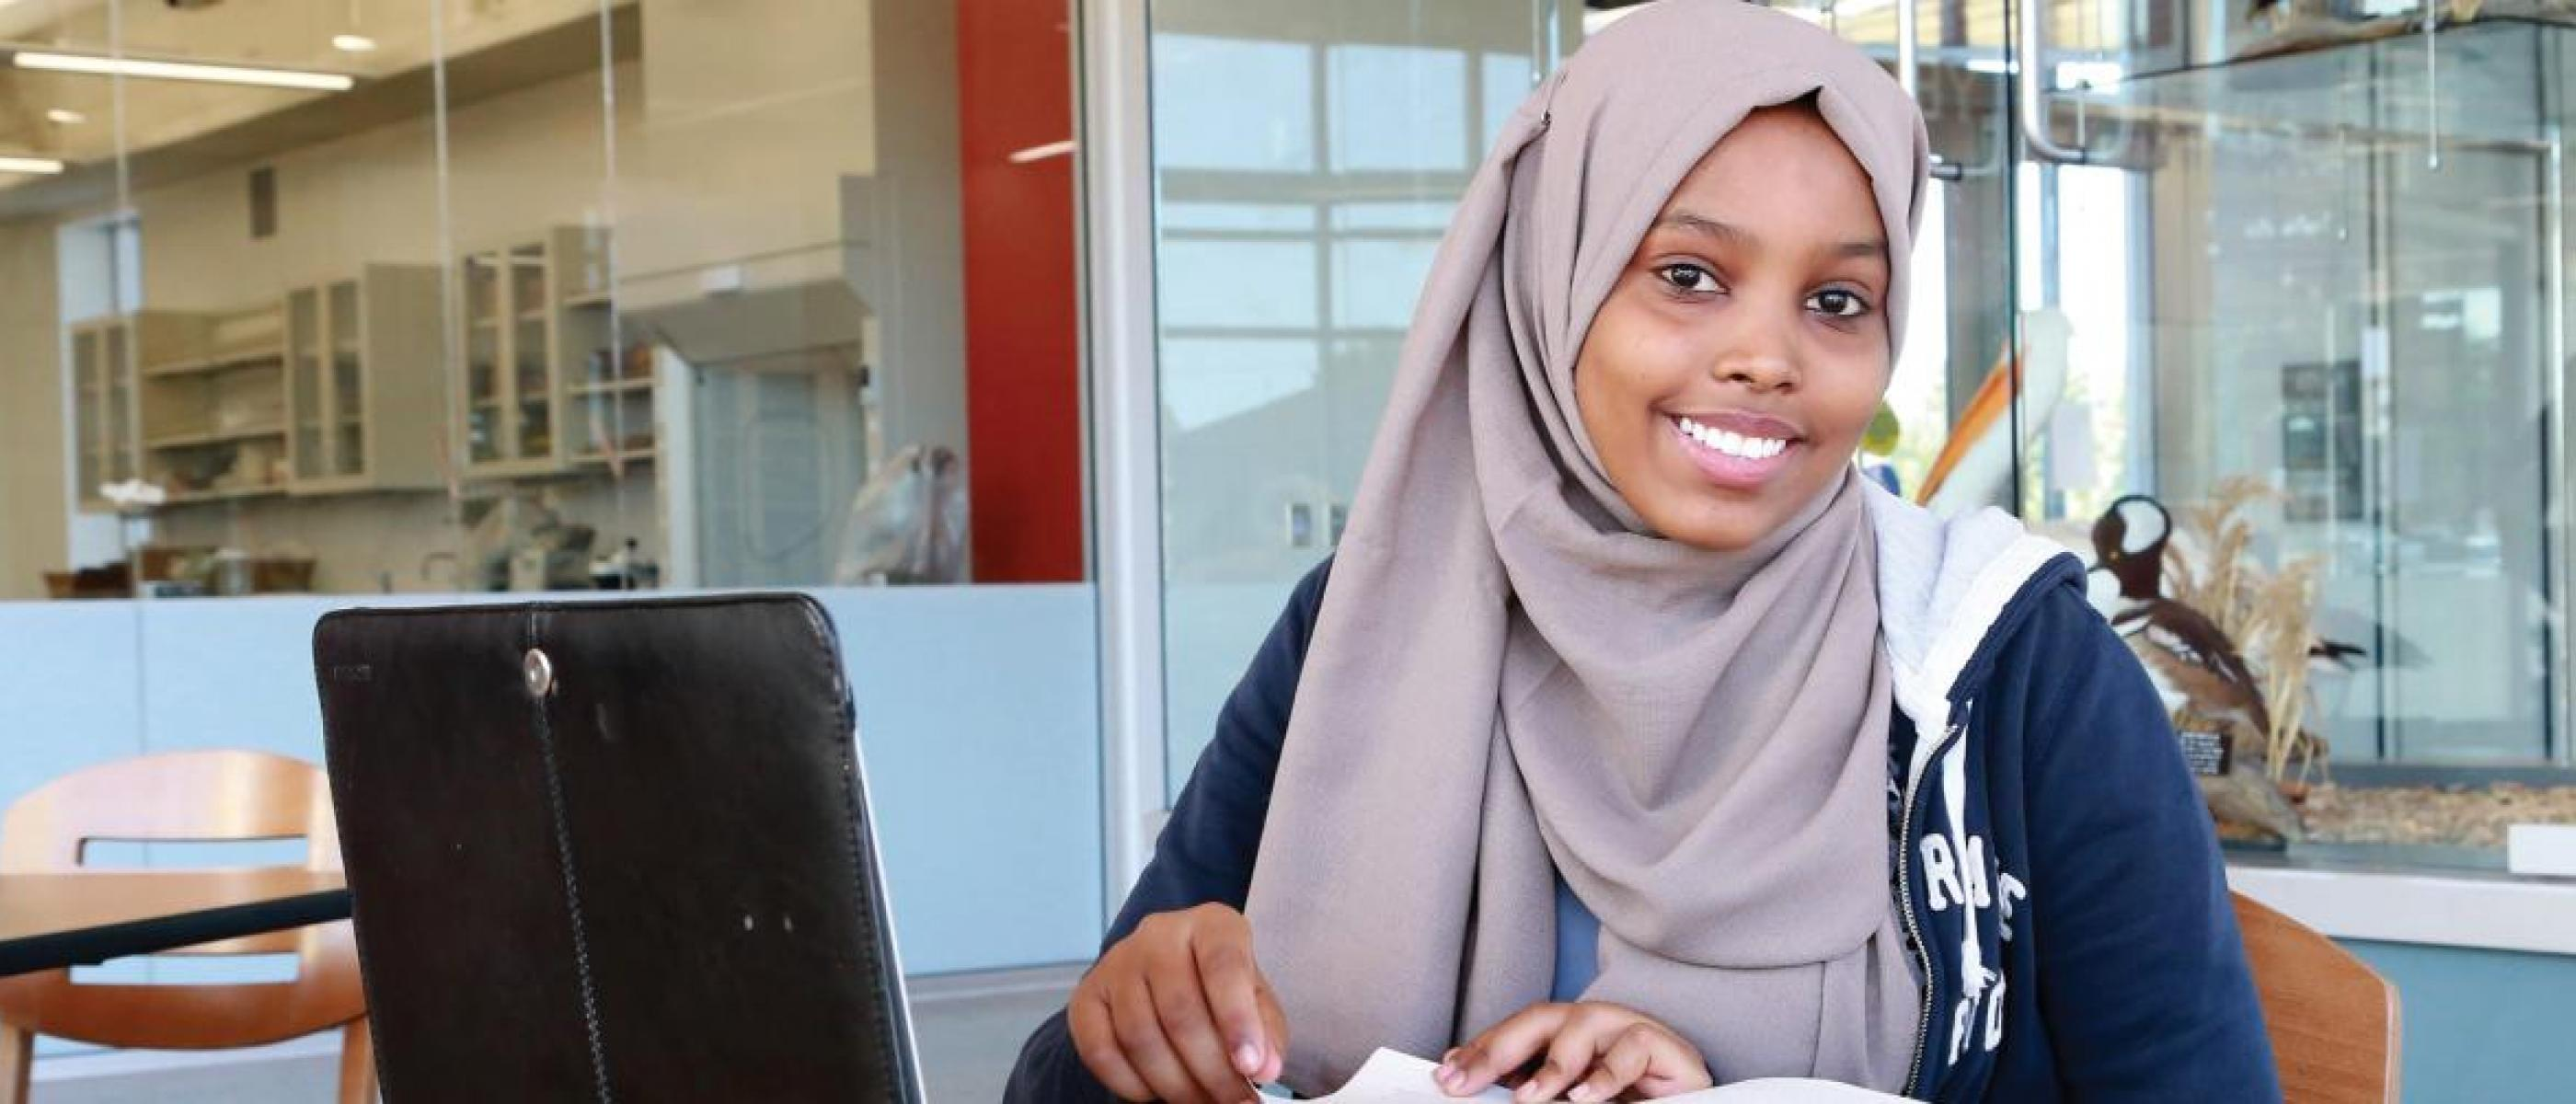 Smiling student studying in Regional Science Education Center